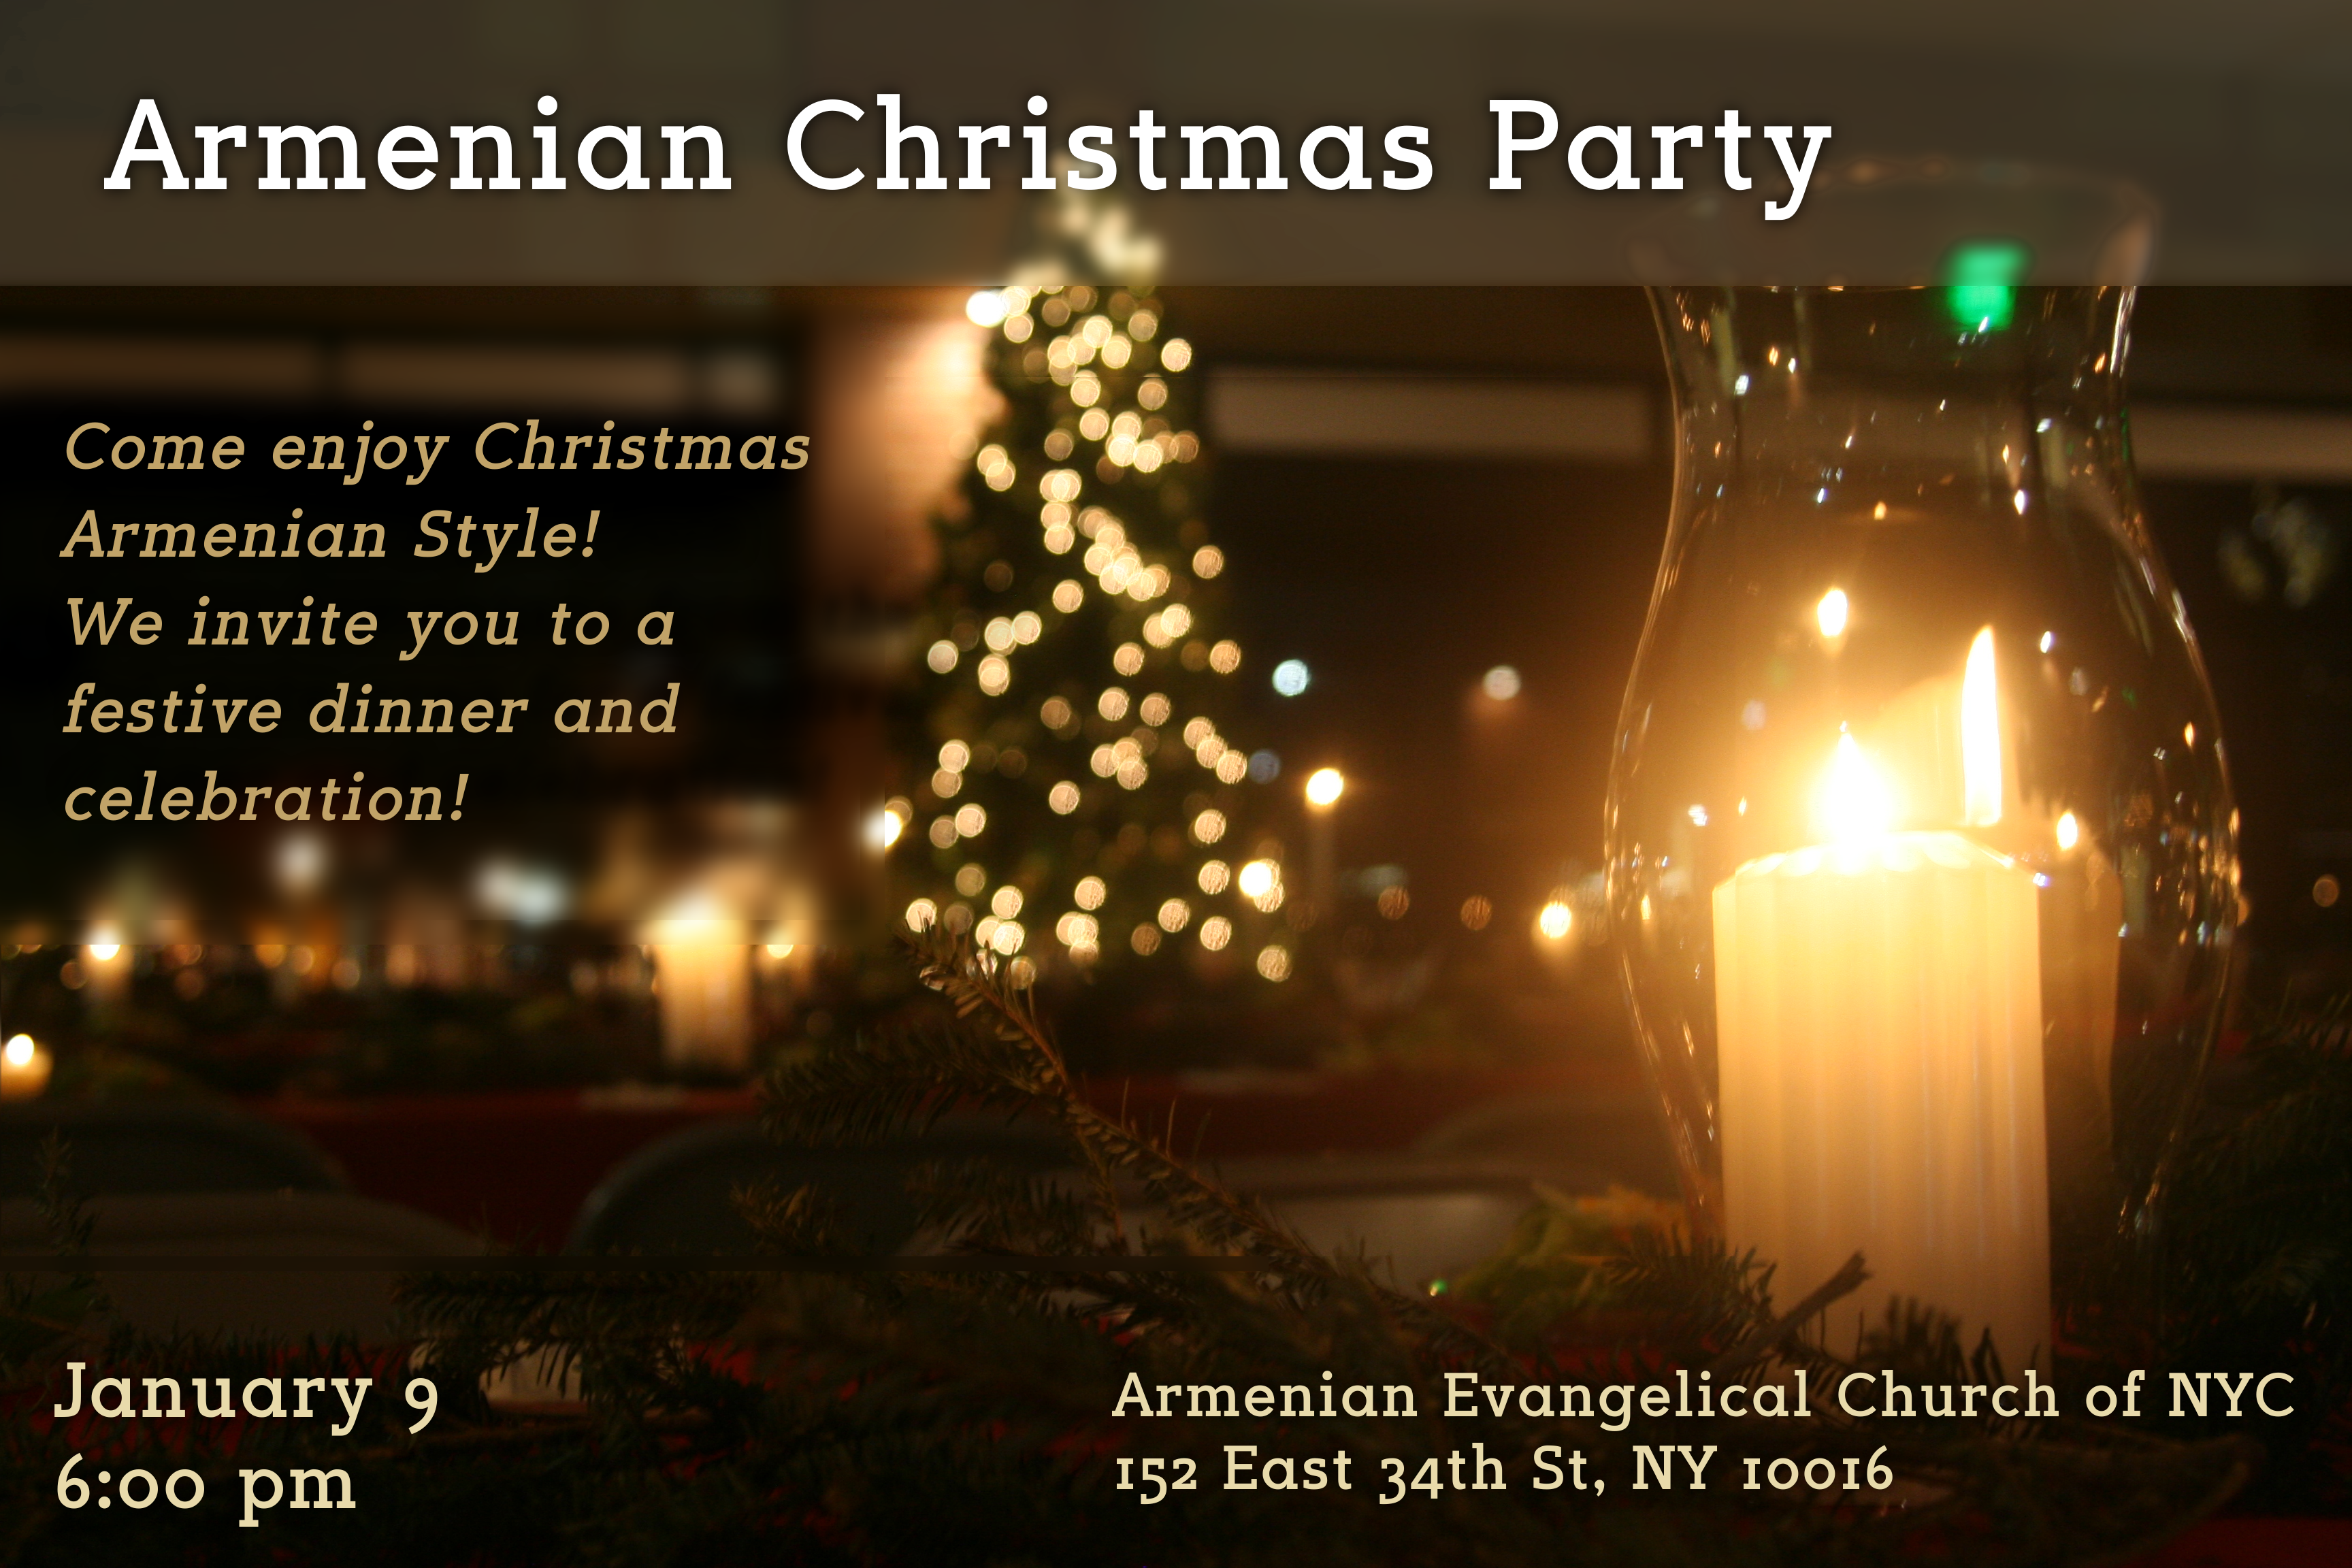 event details - When Is Armenian Christmas